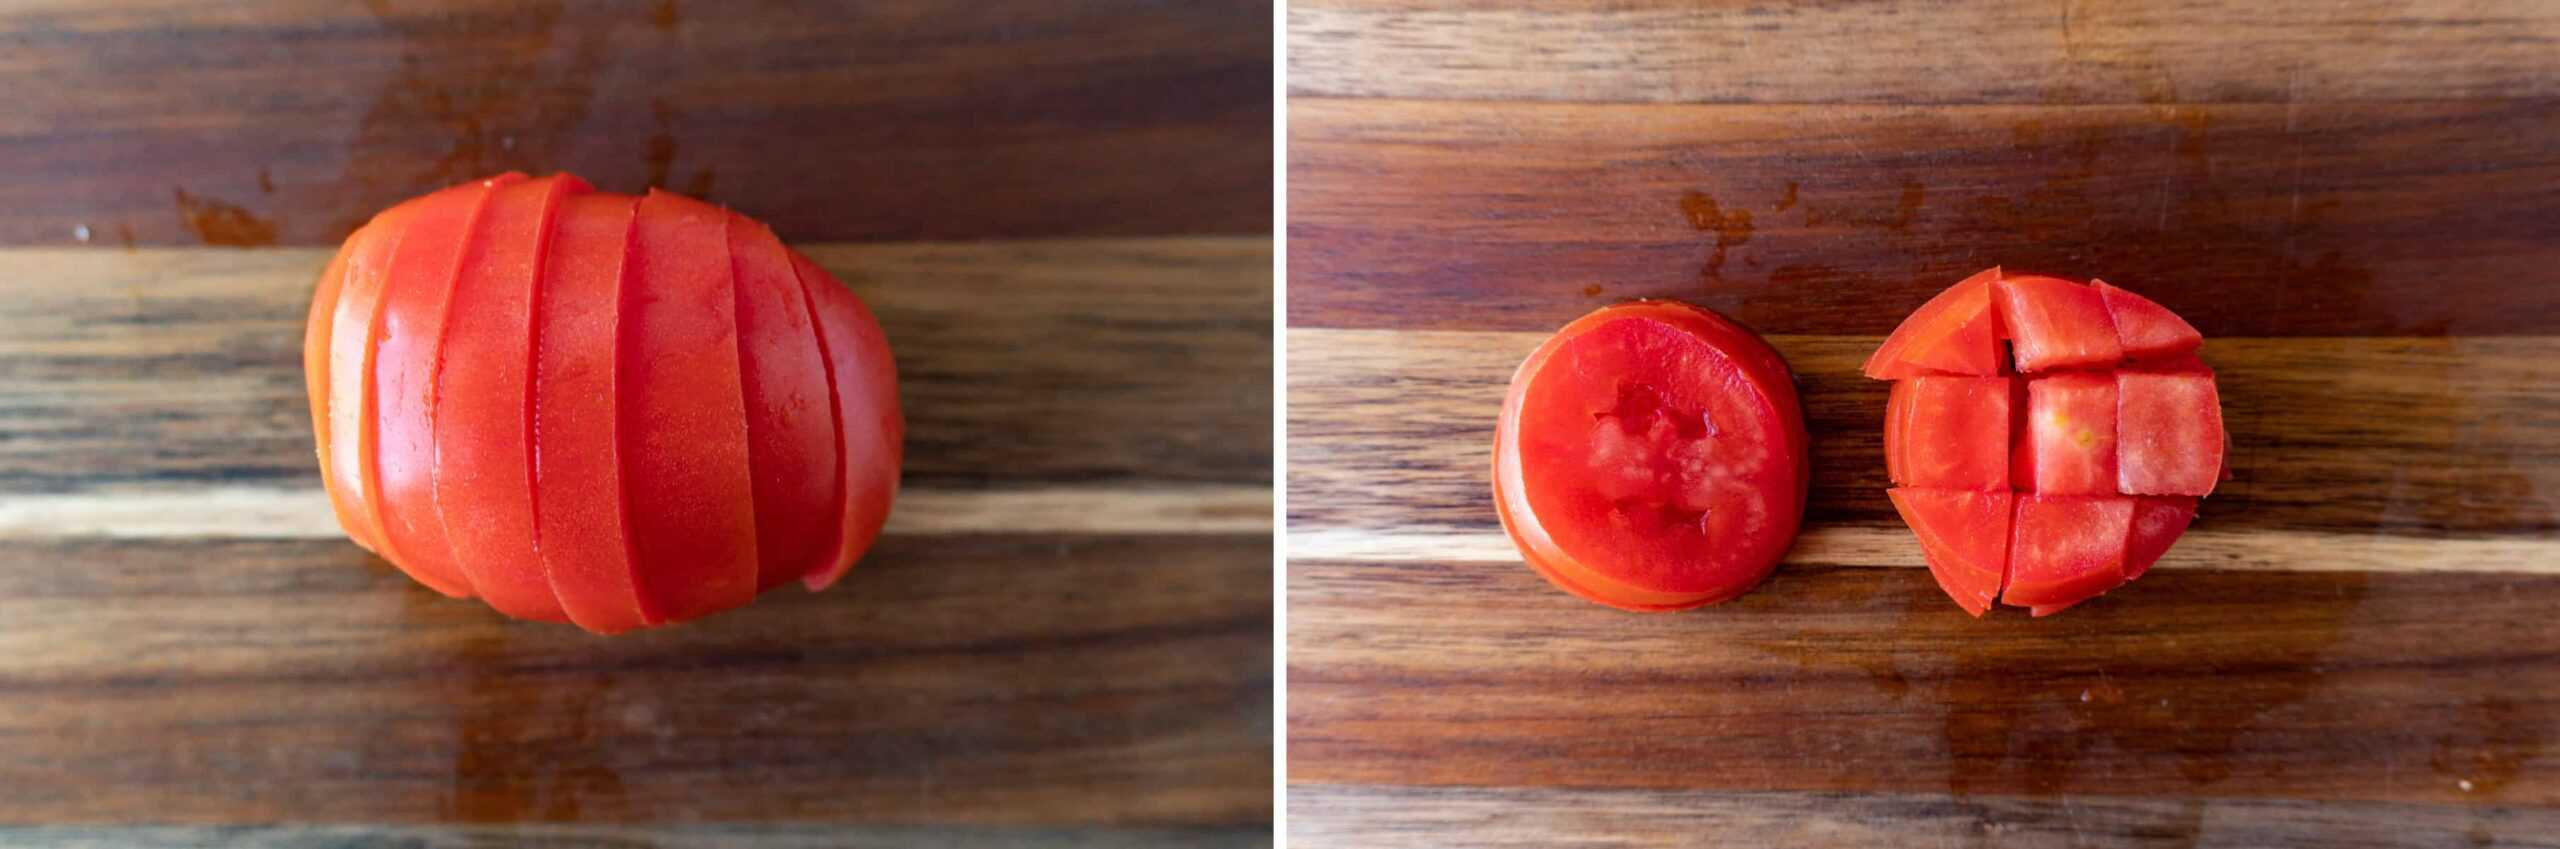 How to cut tomato